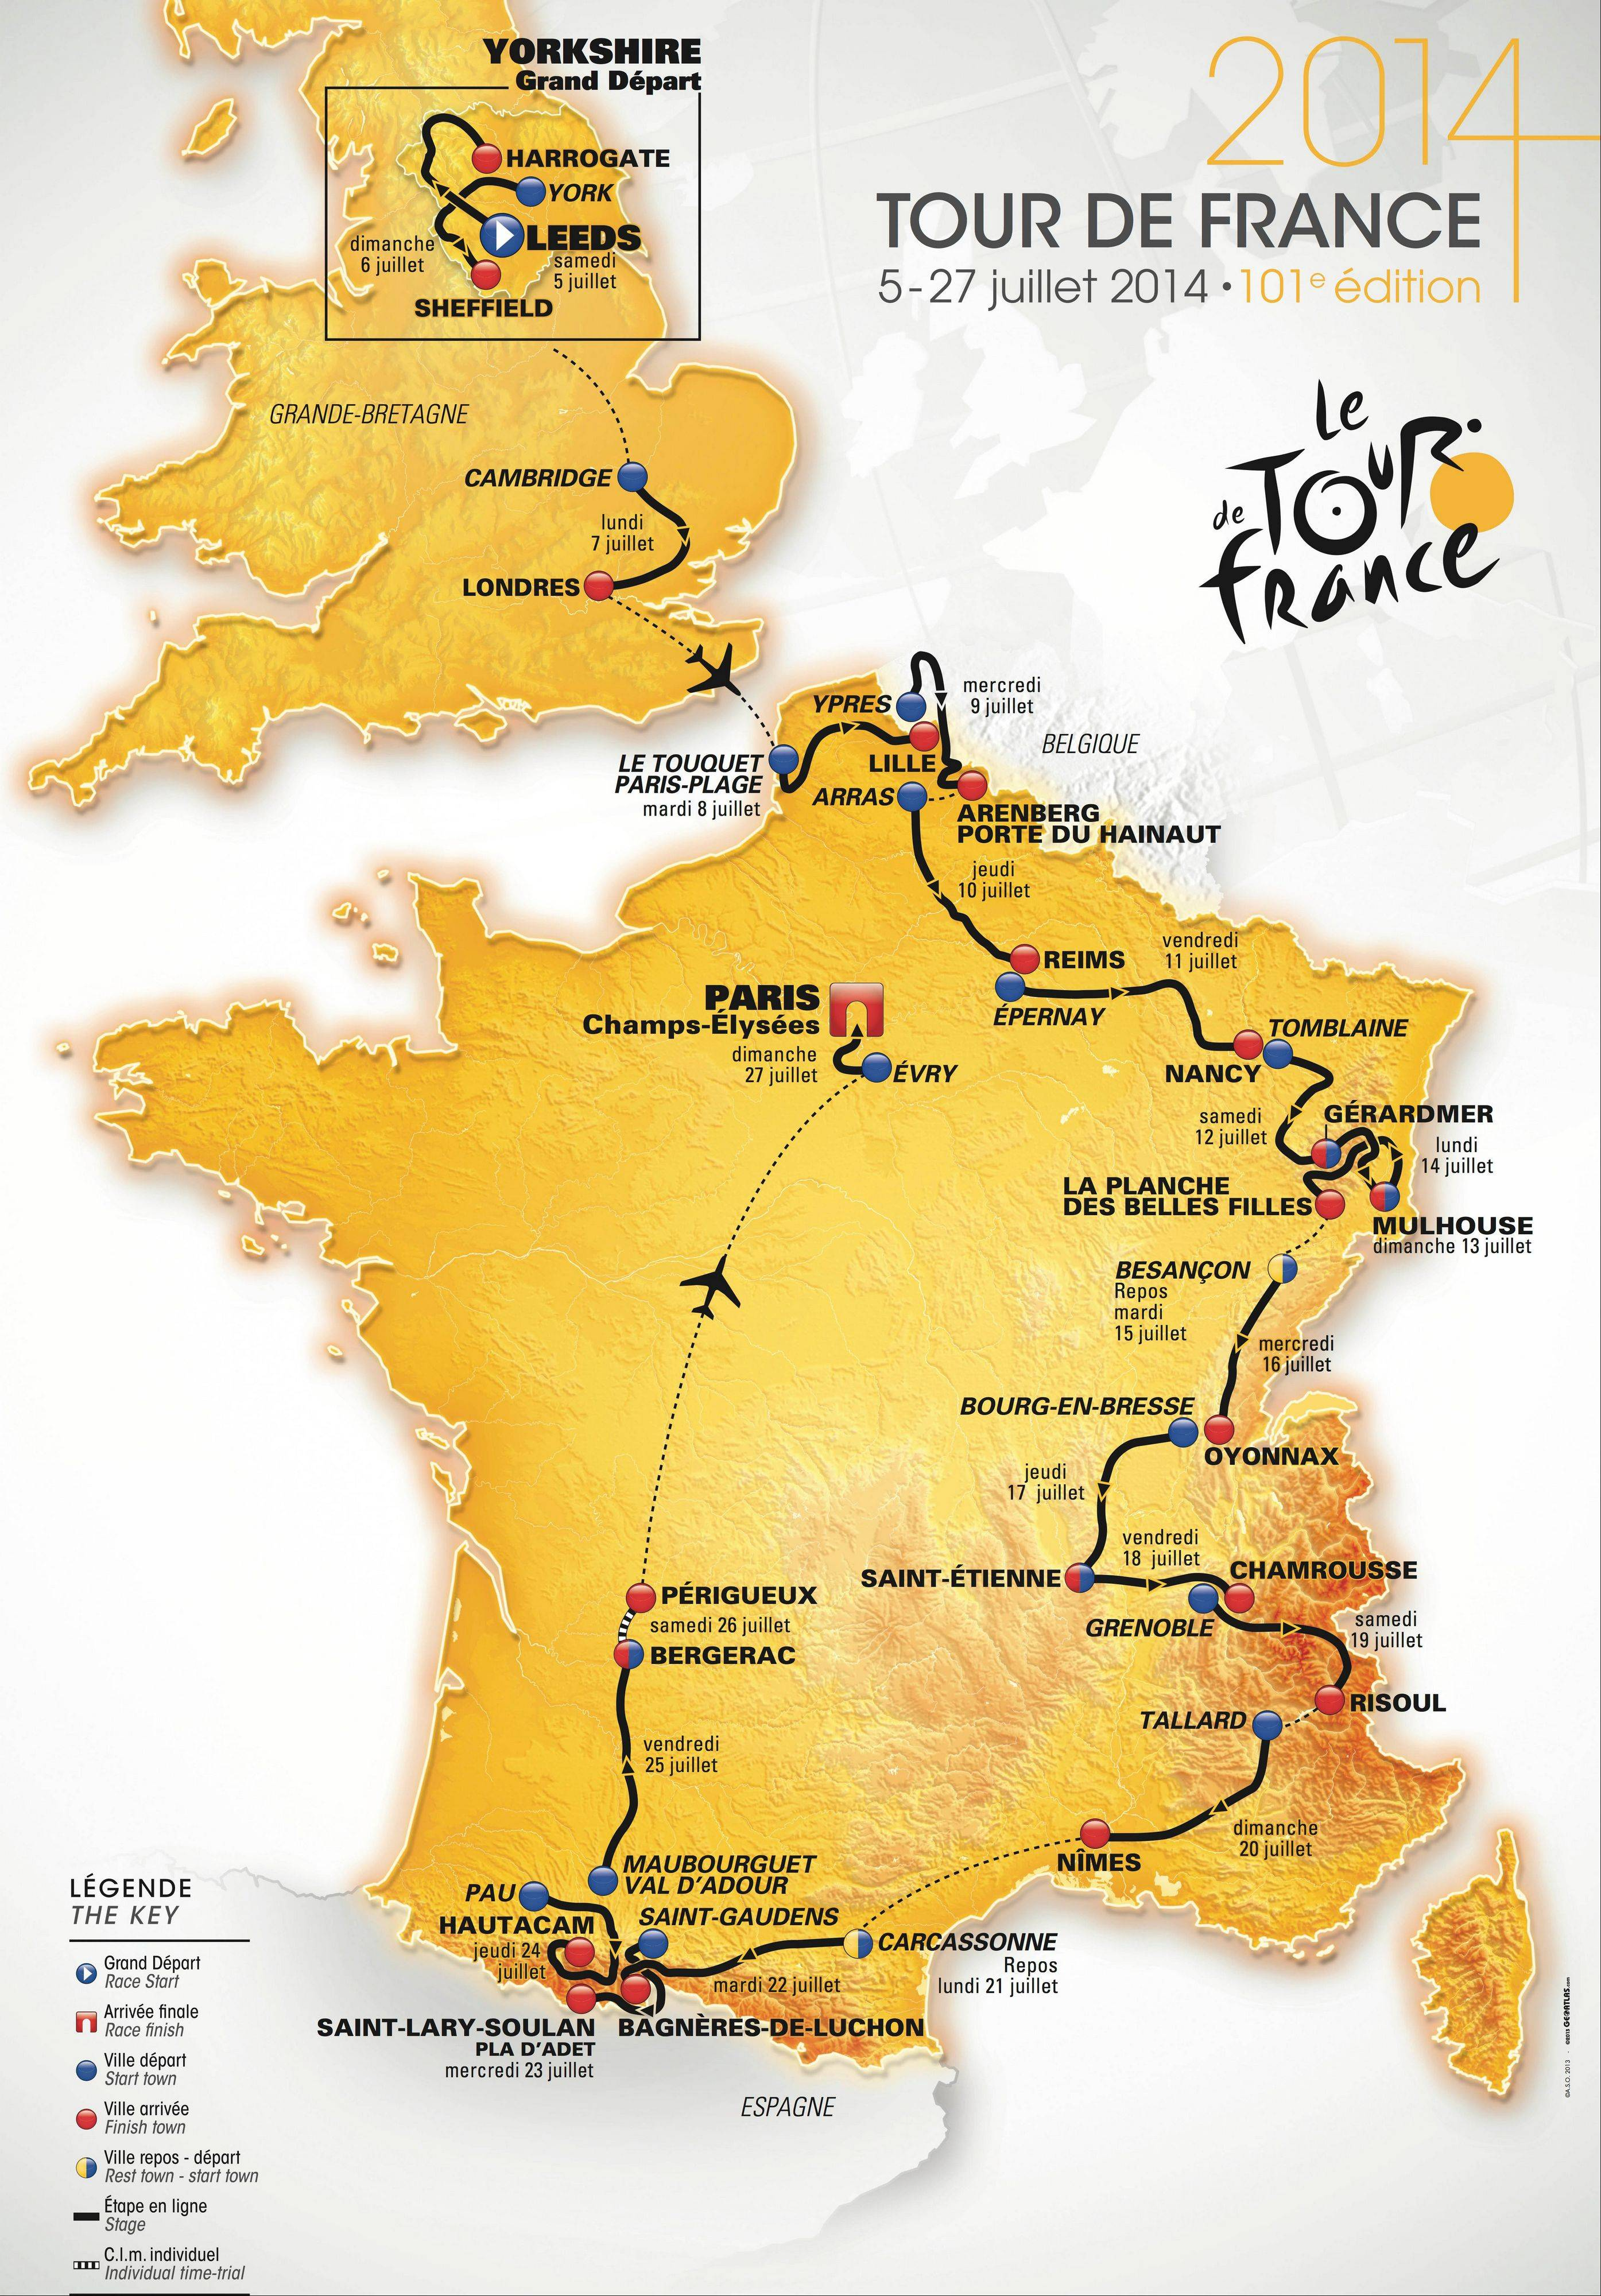 This map displays the route for the 2014 Tour de France. Starting in Leeds, England, on July 5, the 101st tour will end 22 days later on the Champs-Élysées in Paris.